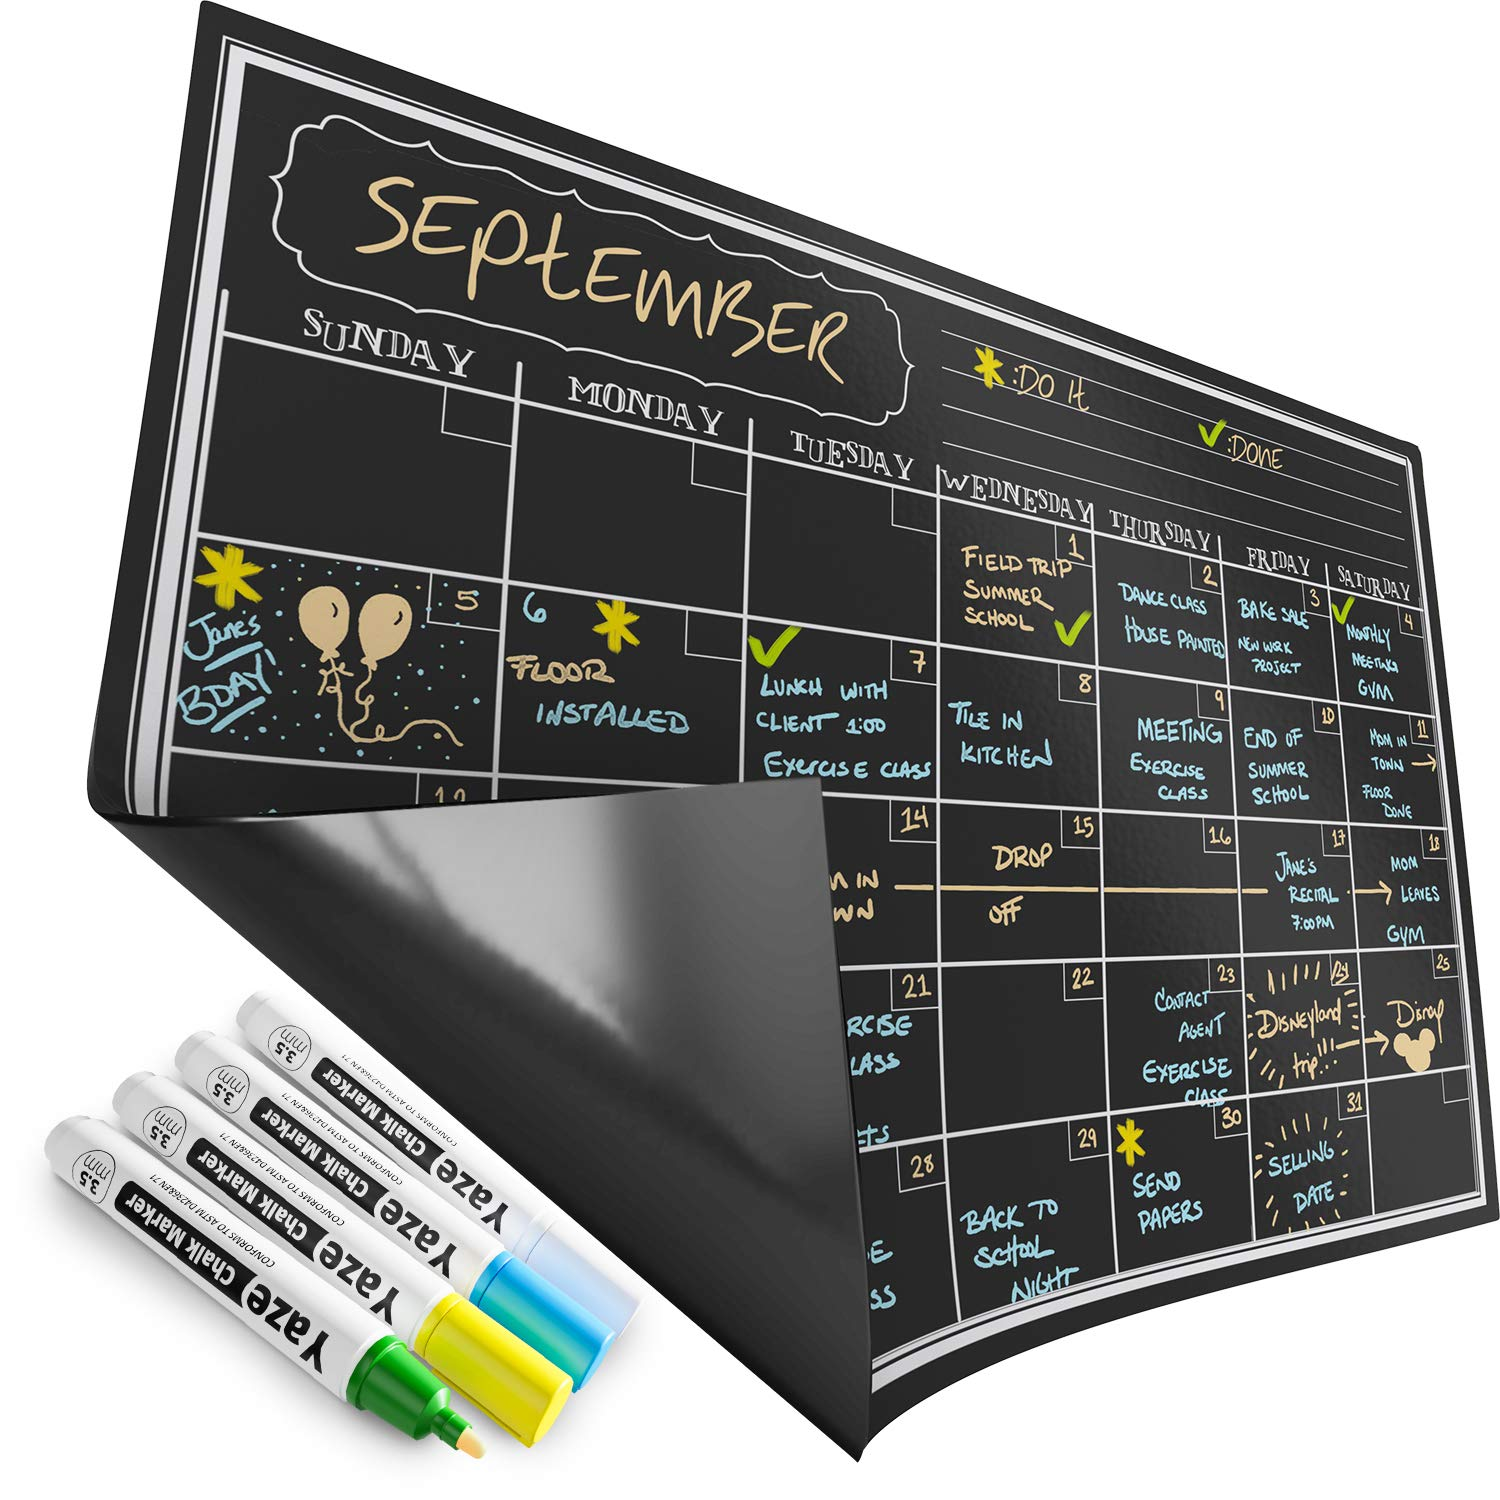 "Magnetic Calendar for Refrigerator - Dry Erase Black Board for Kitchen Fridge - Bright Neon Chalk Markers - 17X12"" Monthly Blackboard Organizer - Perfect Chalkboard Magnet"